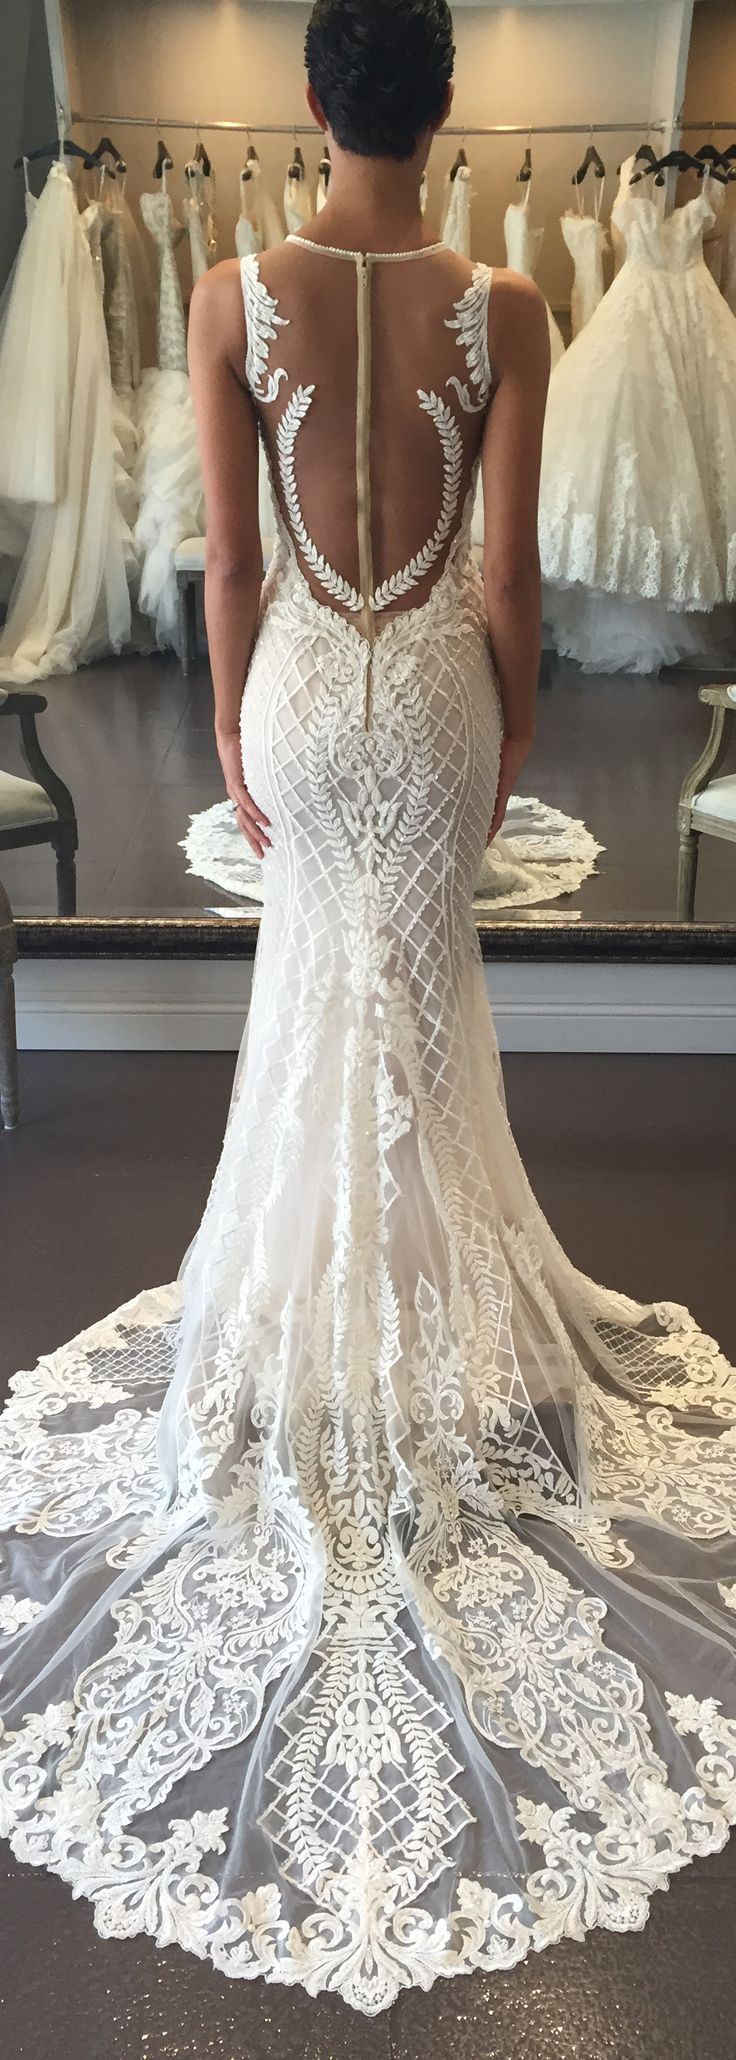 wedding dress, vestido de noiva com decote nas costas